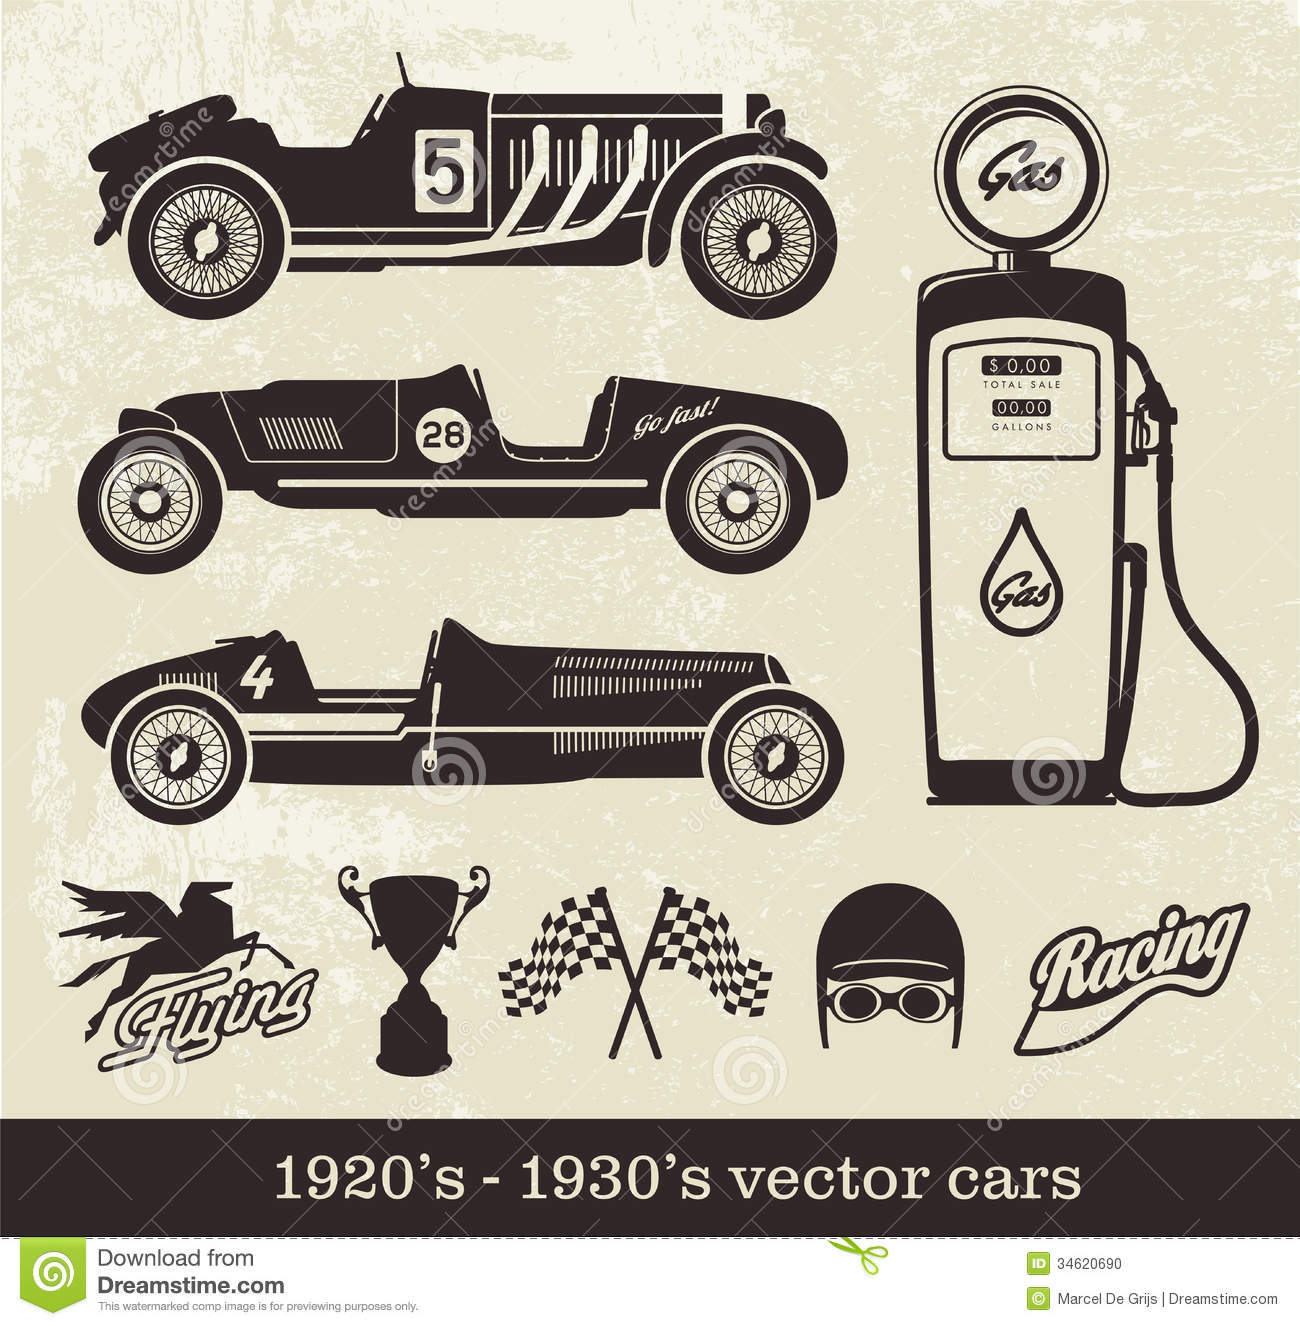 Vintage vector cars stock vector. Illustration of cars - 34620690